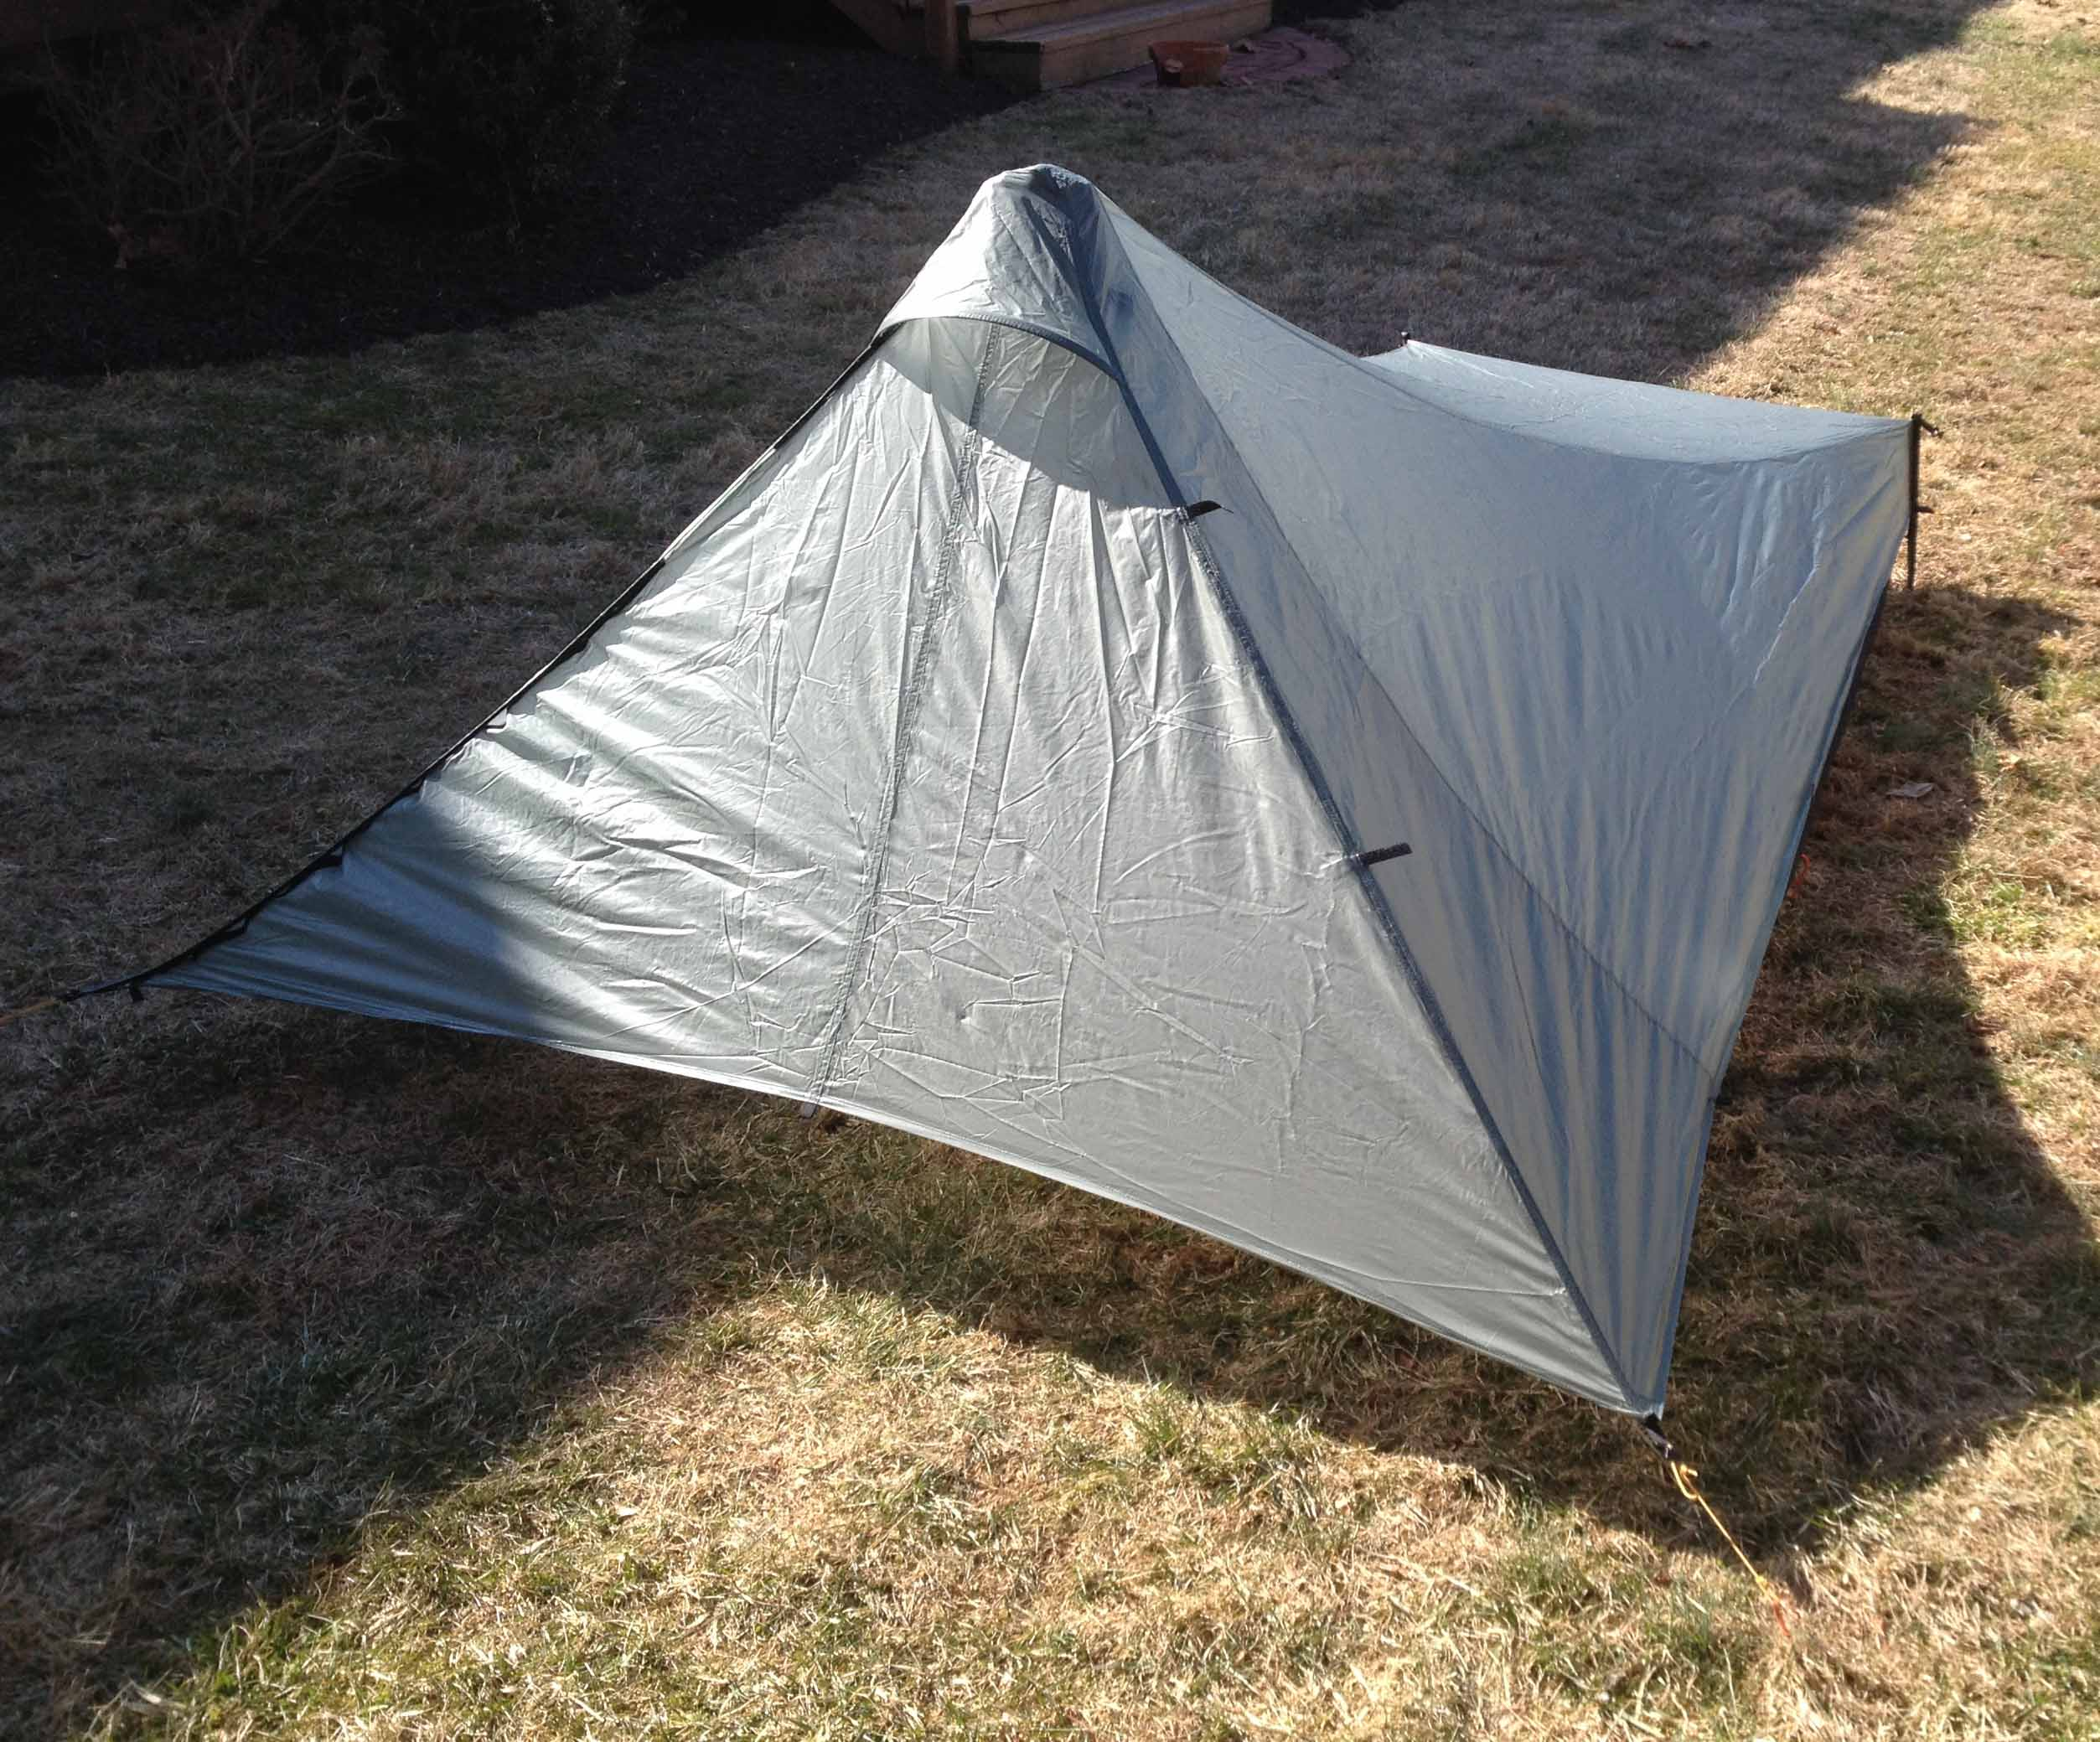 $160 shipped CONUS PayPal Goods u0026 Services (Iu0027ll pay fee; Gu0026S makes it much easier for me to ship packages). Can ship outside CONUS but will need to add ... : tarp tent contrail - memphite.com